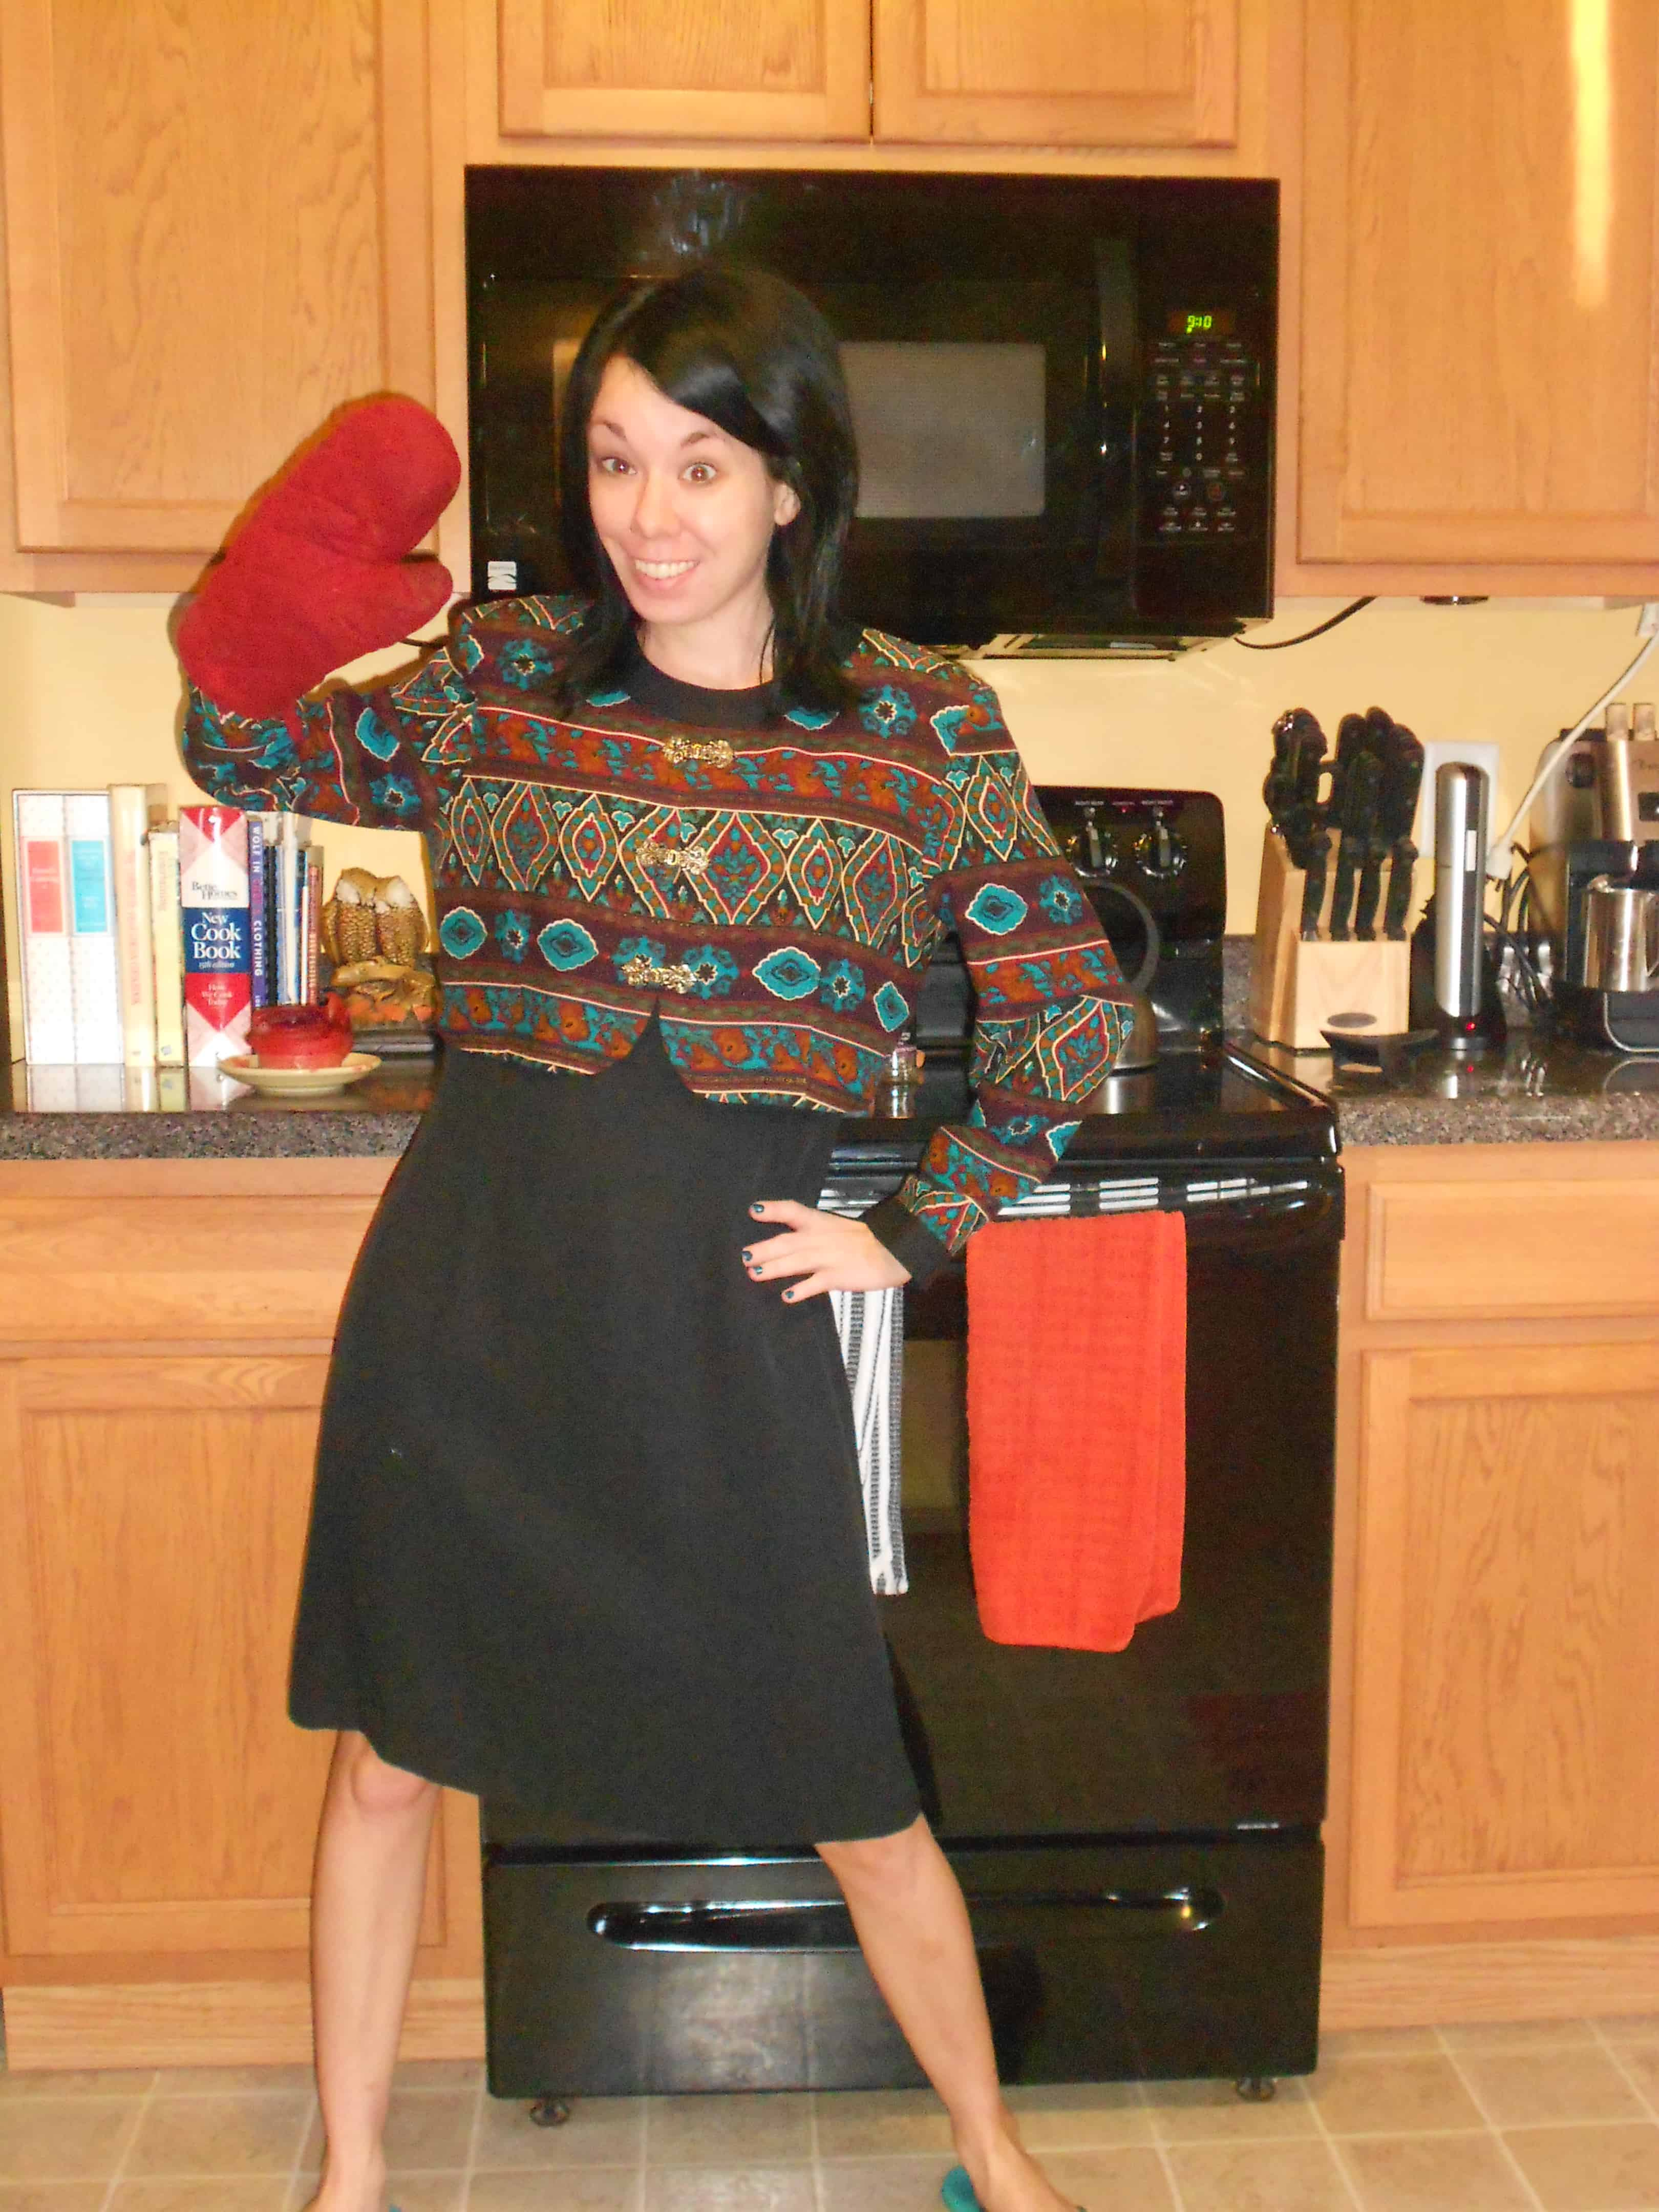 '90s dress to jacket refashion before in kitchen